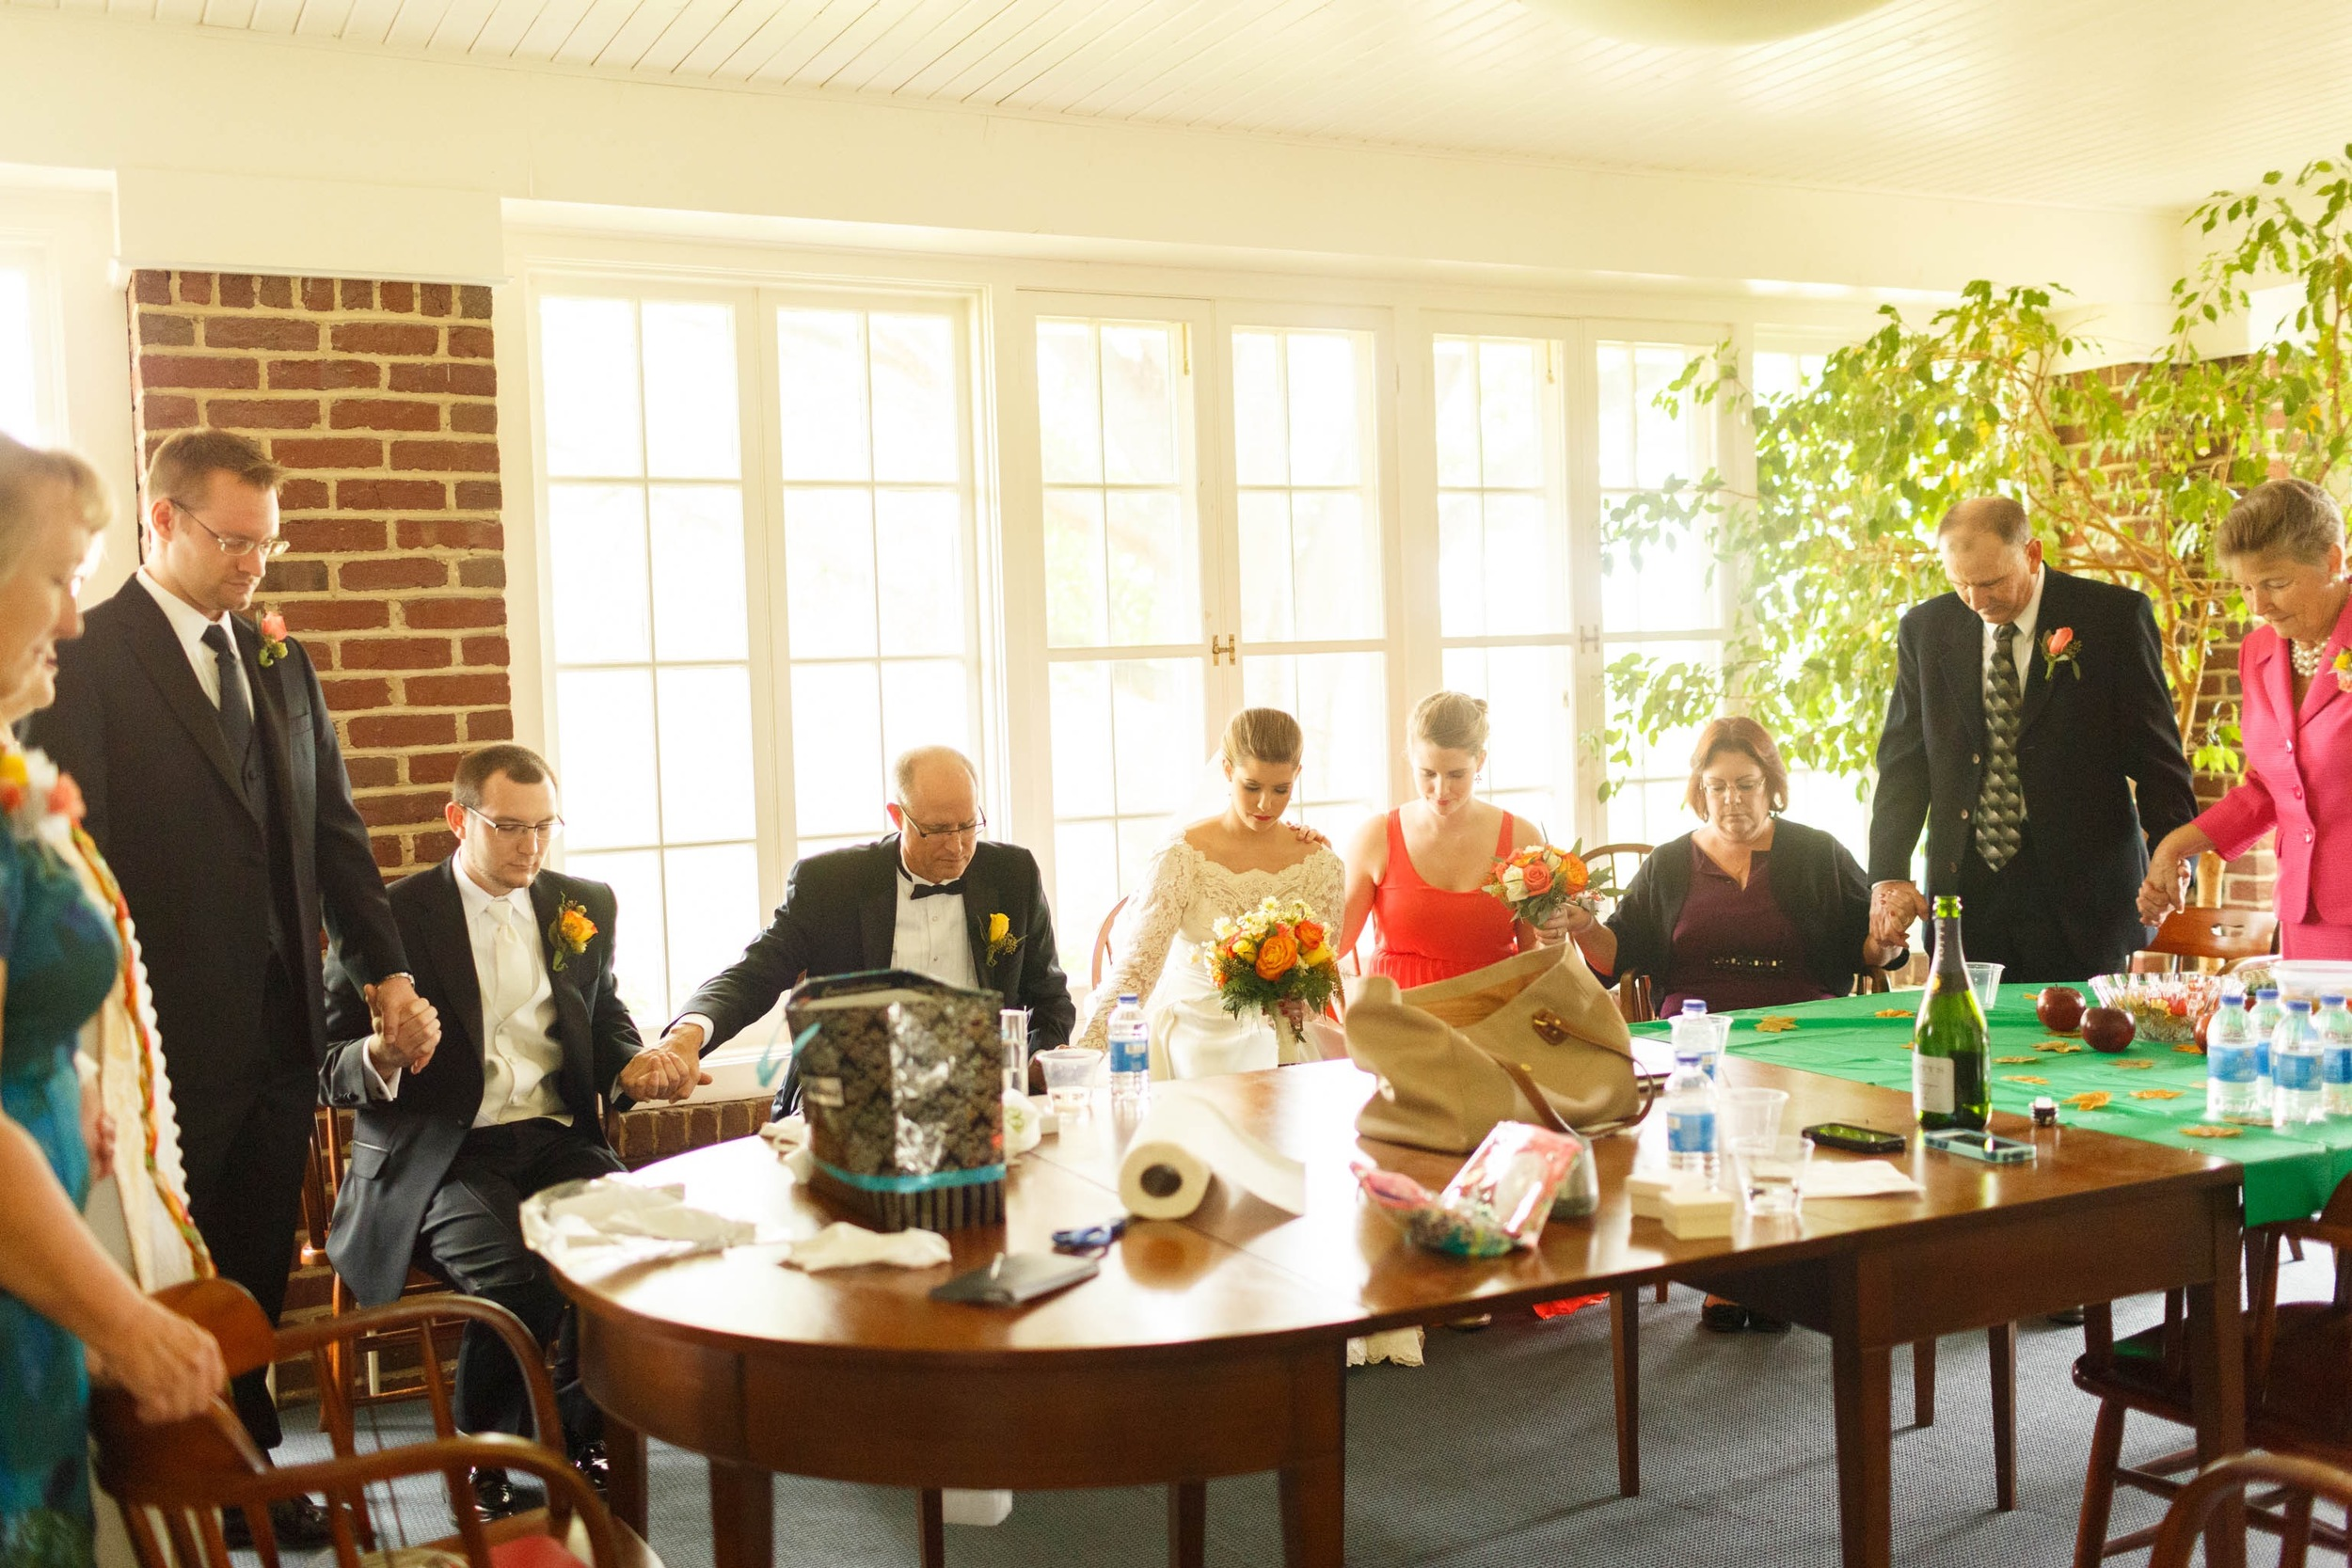 My 5 Favorite Photographed Moments of Our Wedding - Chickadee Events